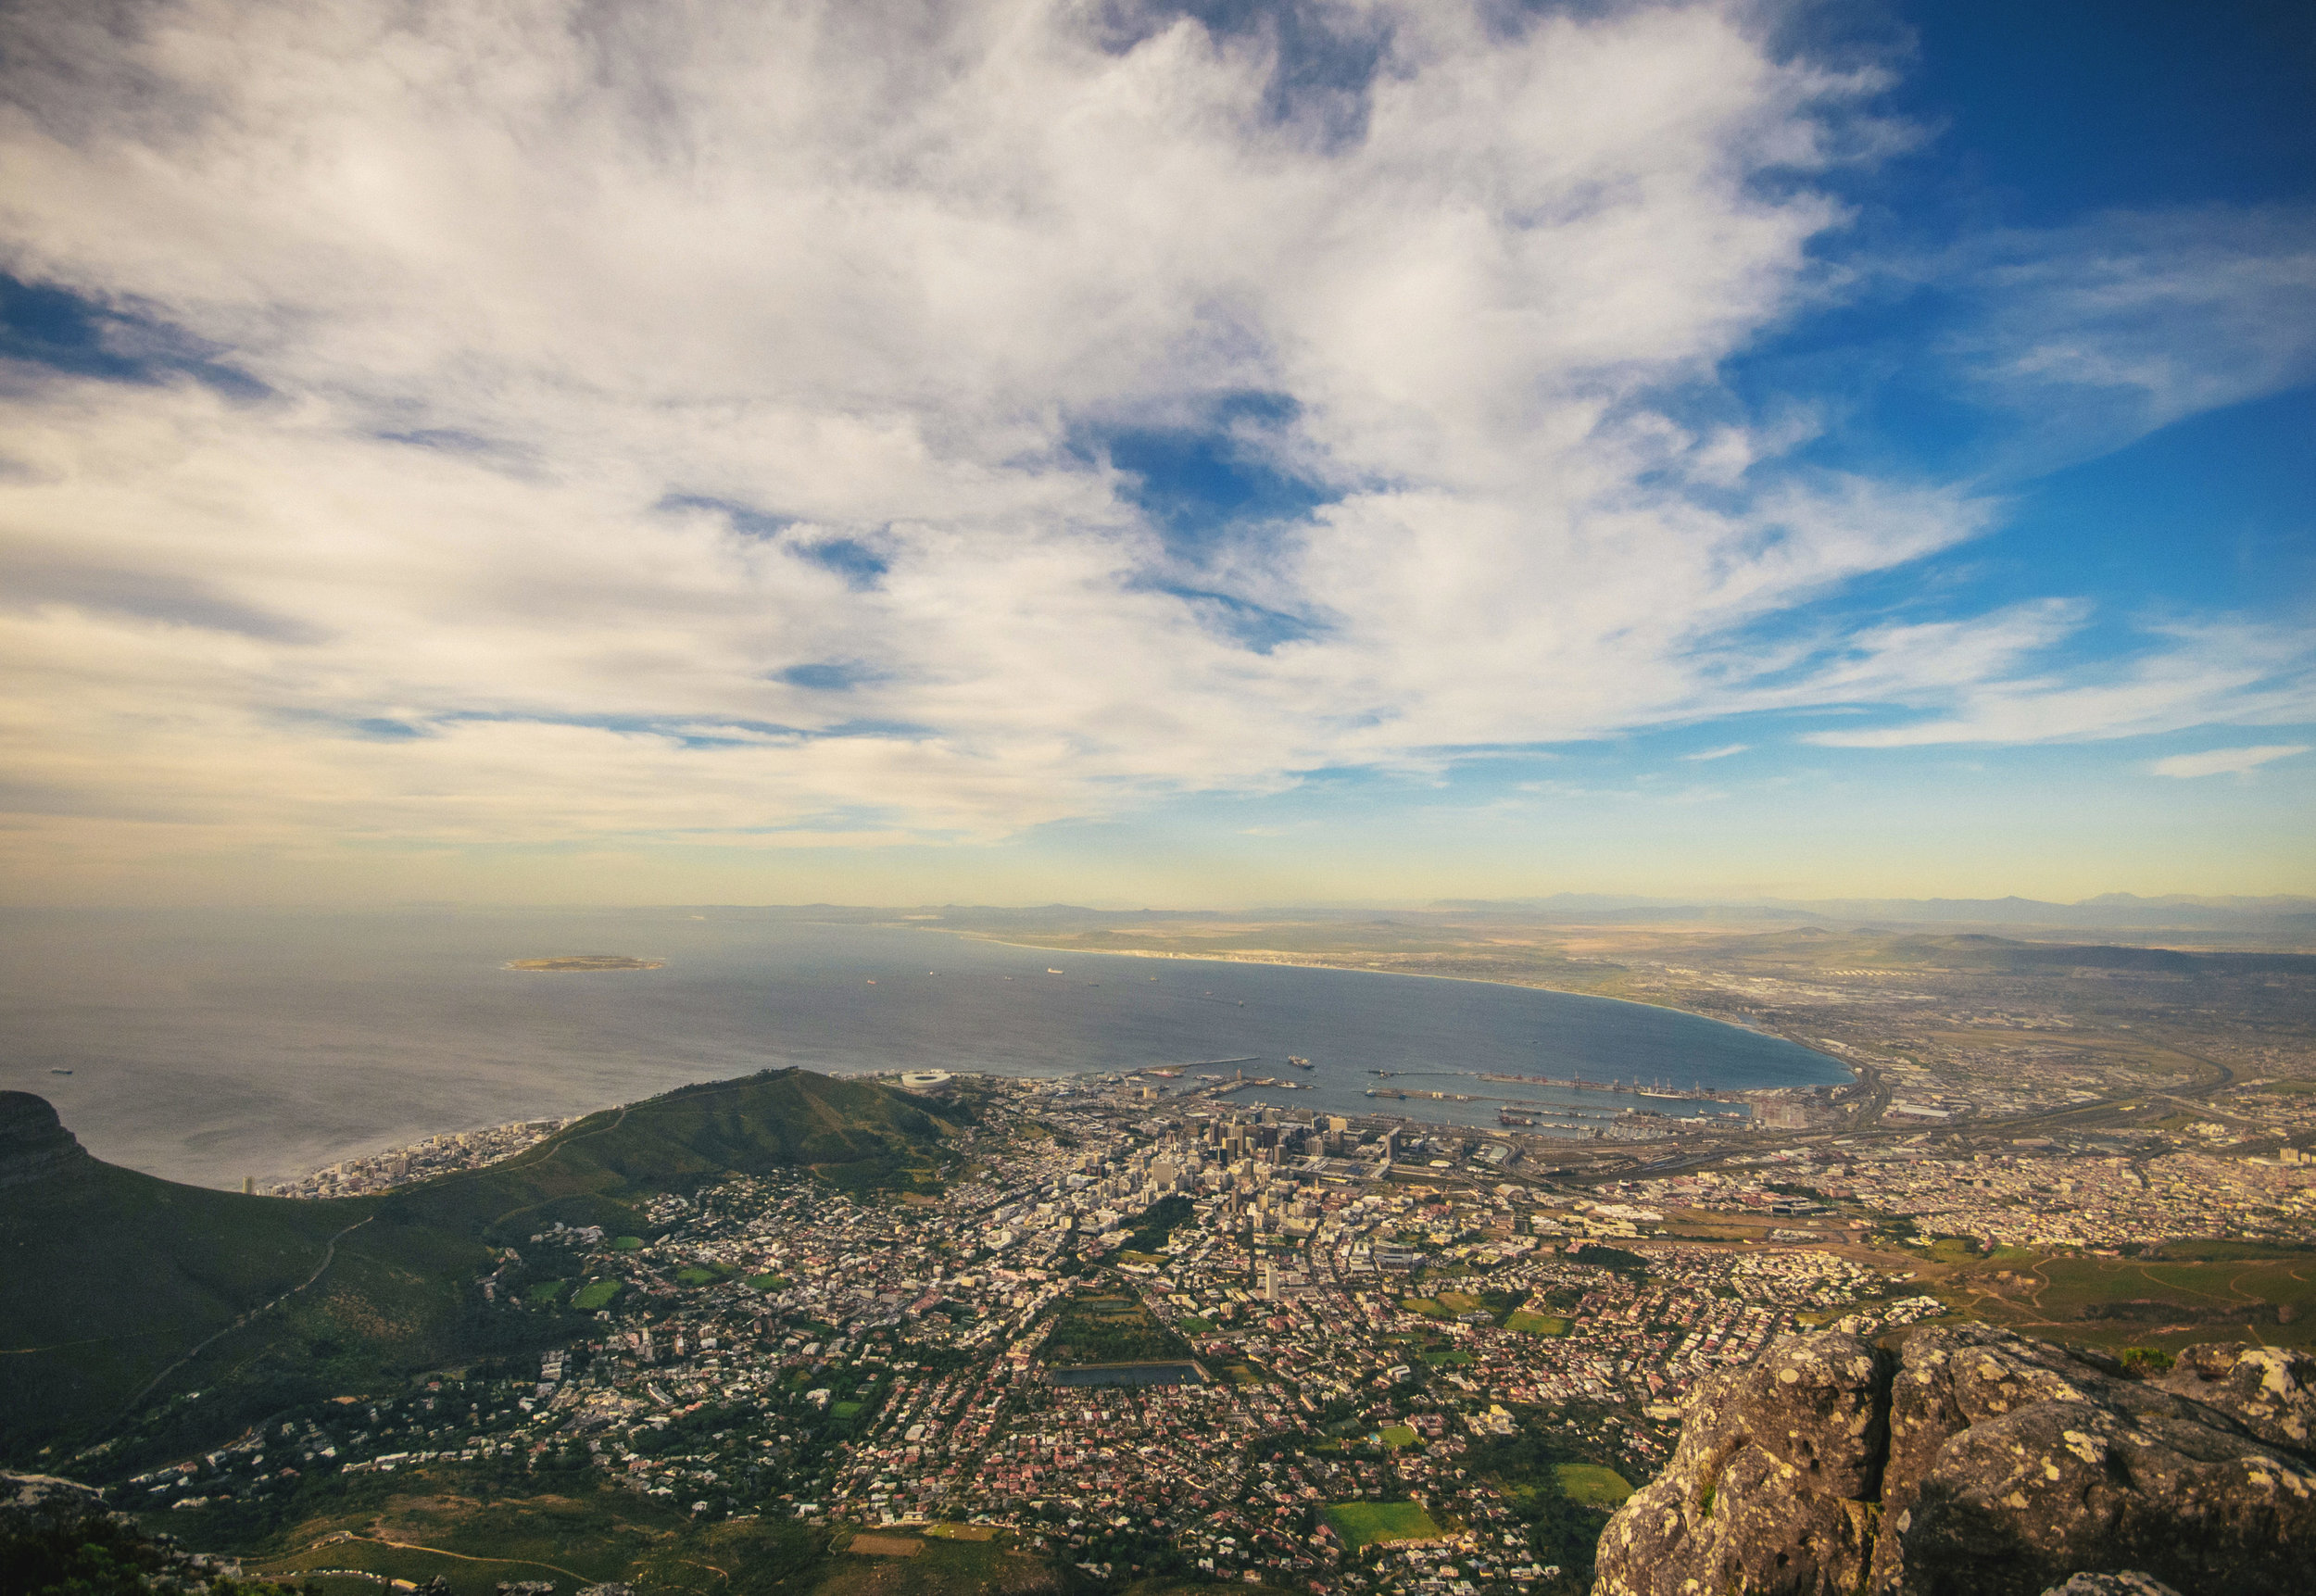 CAPE TOWN BOUNCE TOUR - 1 Day. 3 Activities. Countless memories. Come and play in Africa's most vibrant city.VIEW TOUR DETAILS